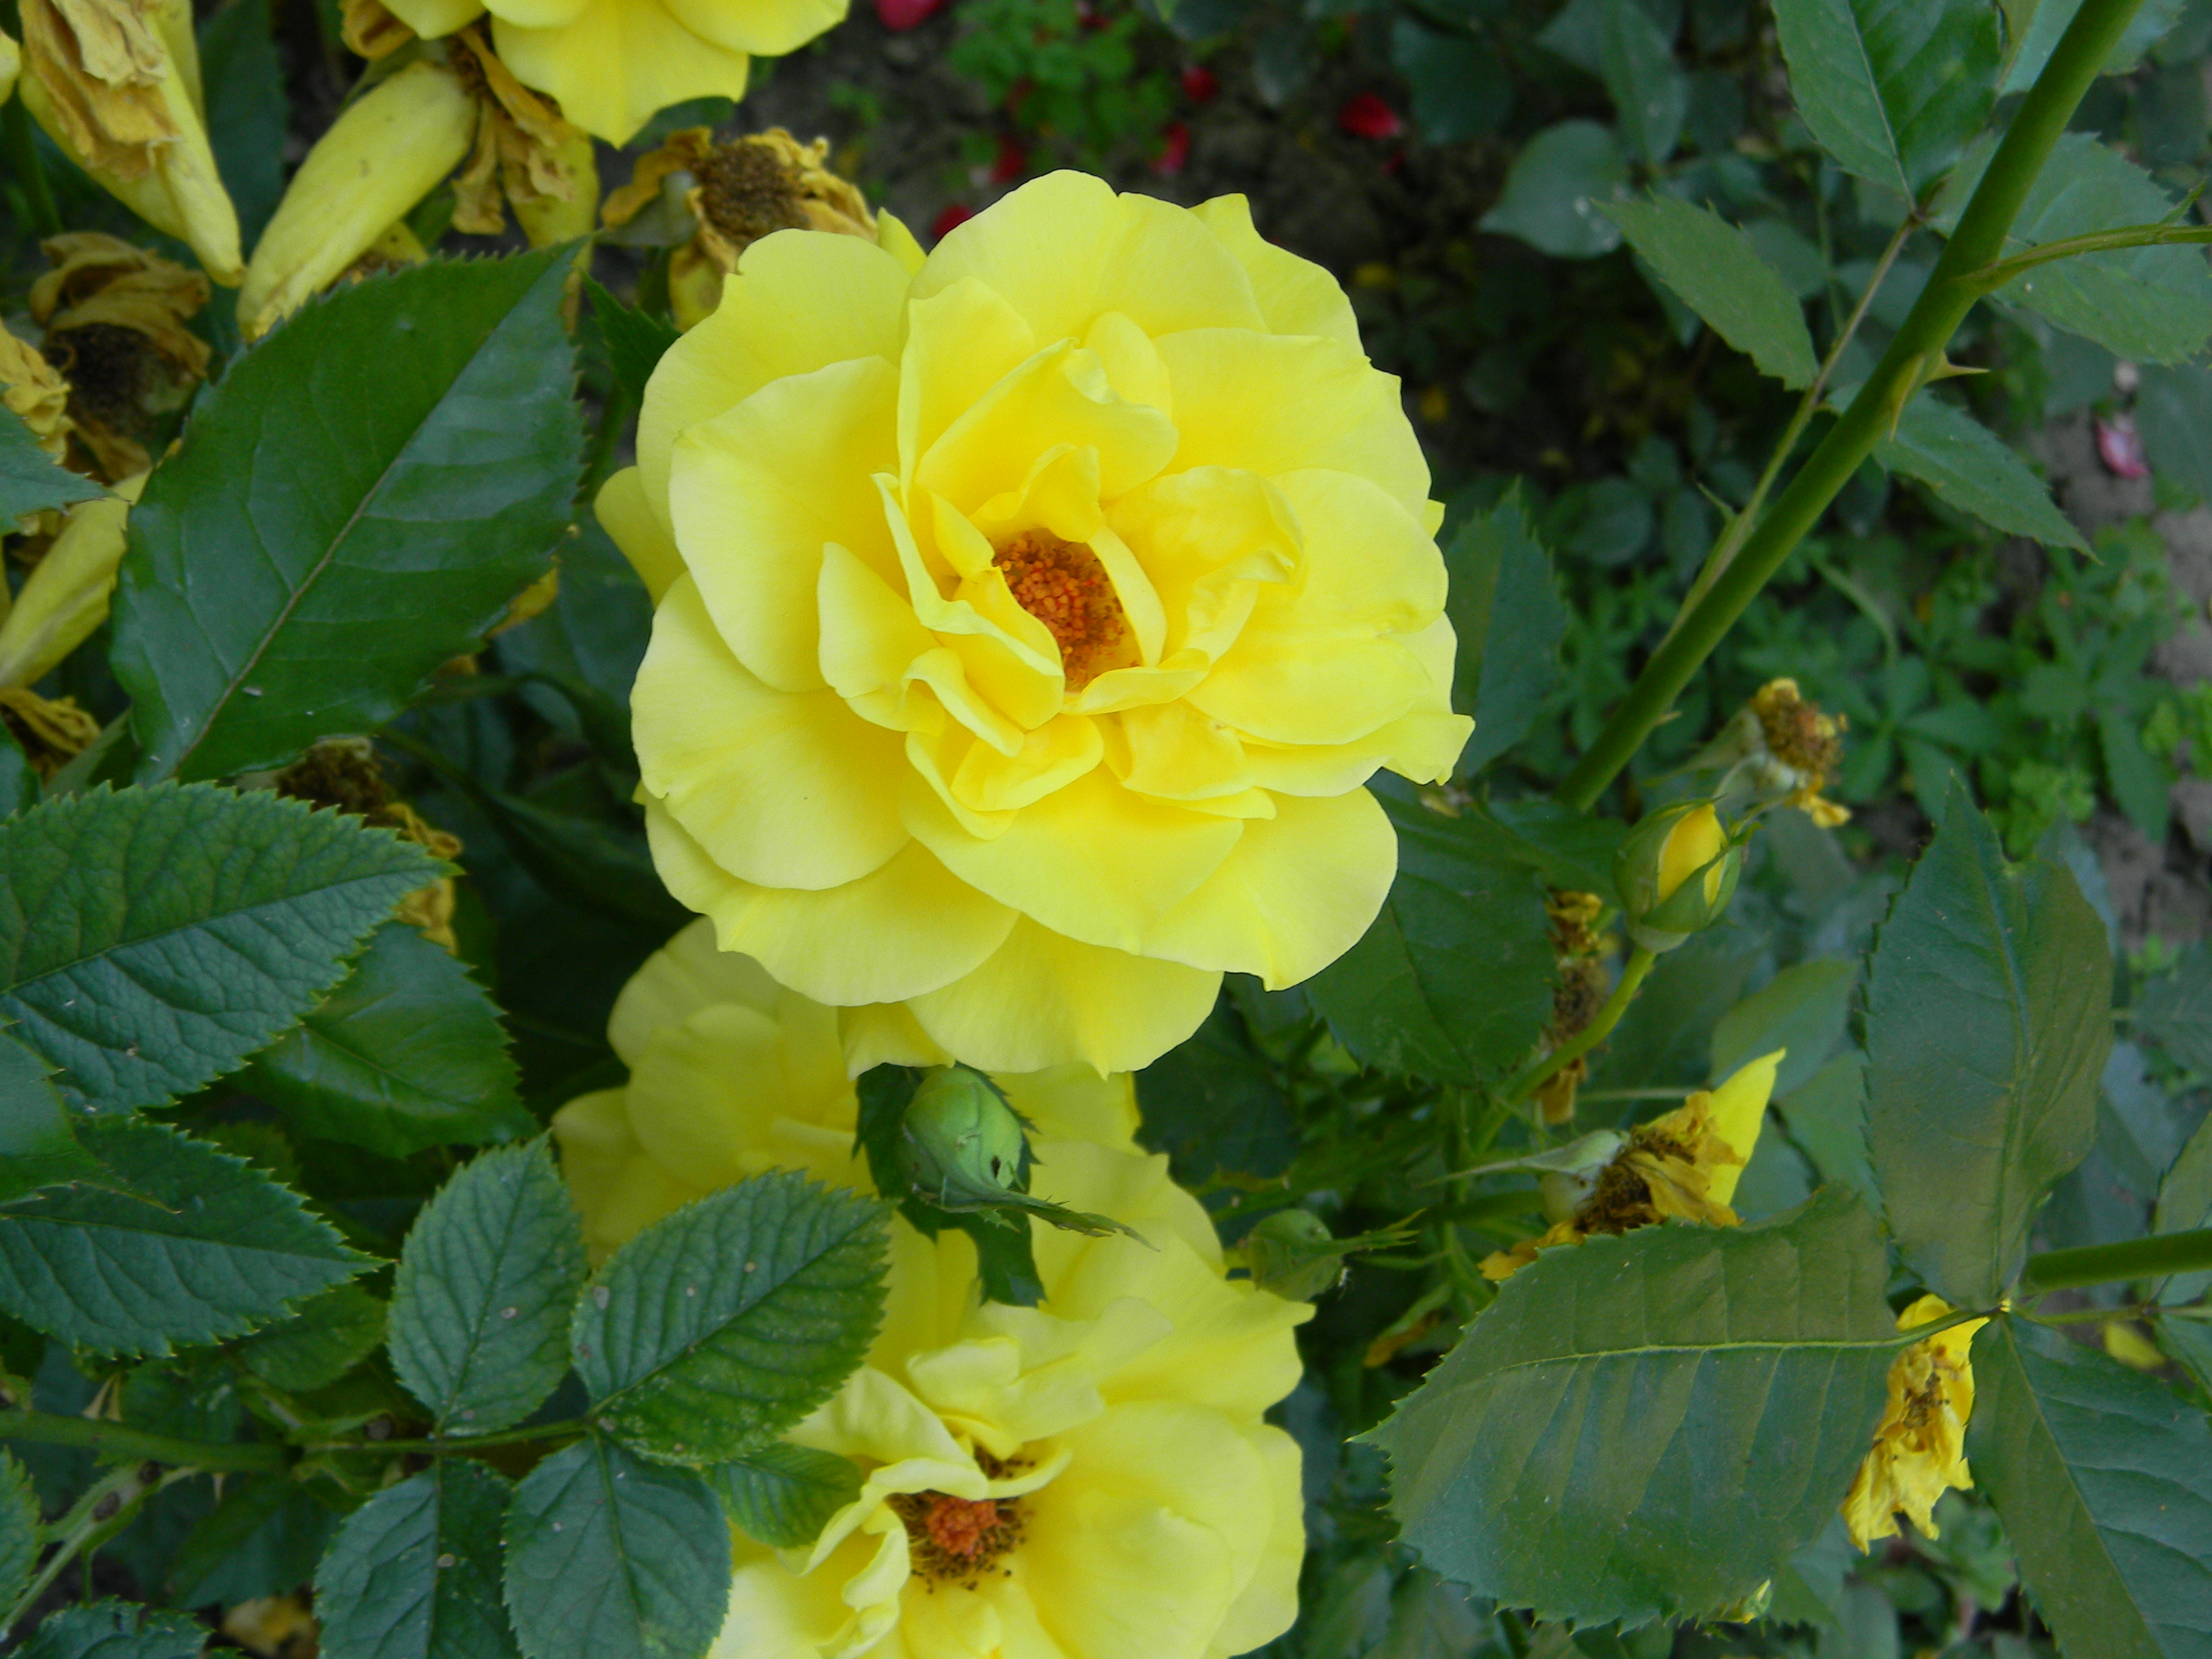 Yellow flower, Flower, Nature, Plants, Rose, HQ Photo